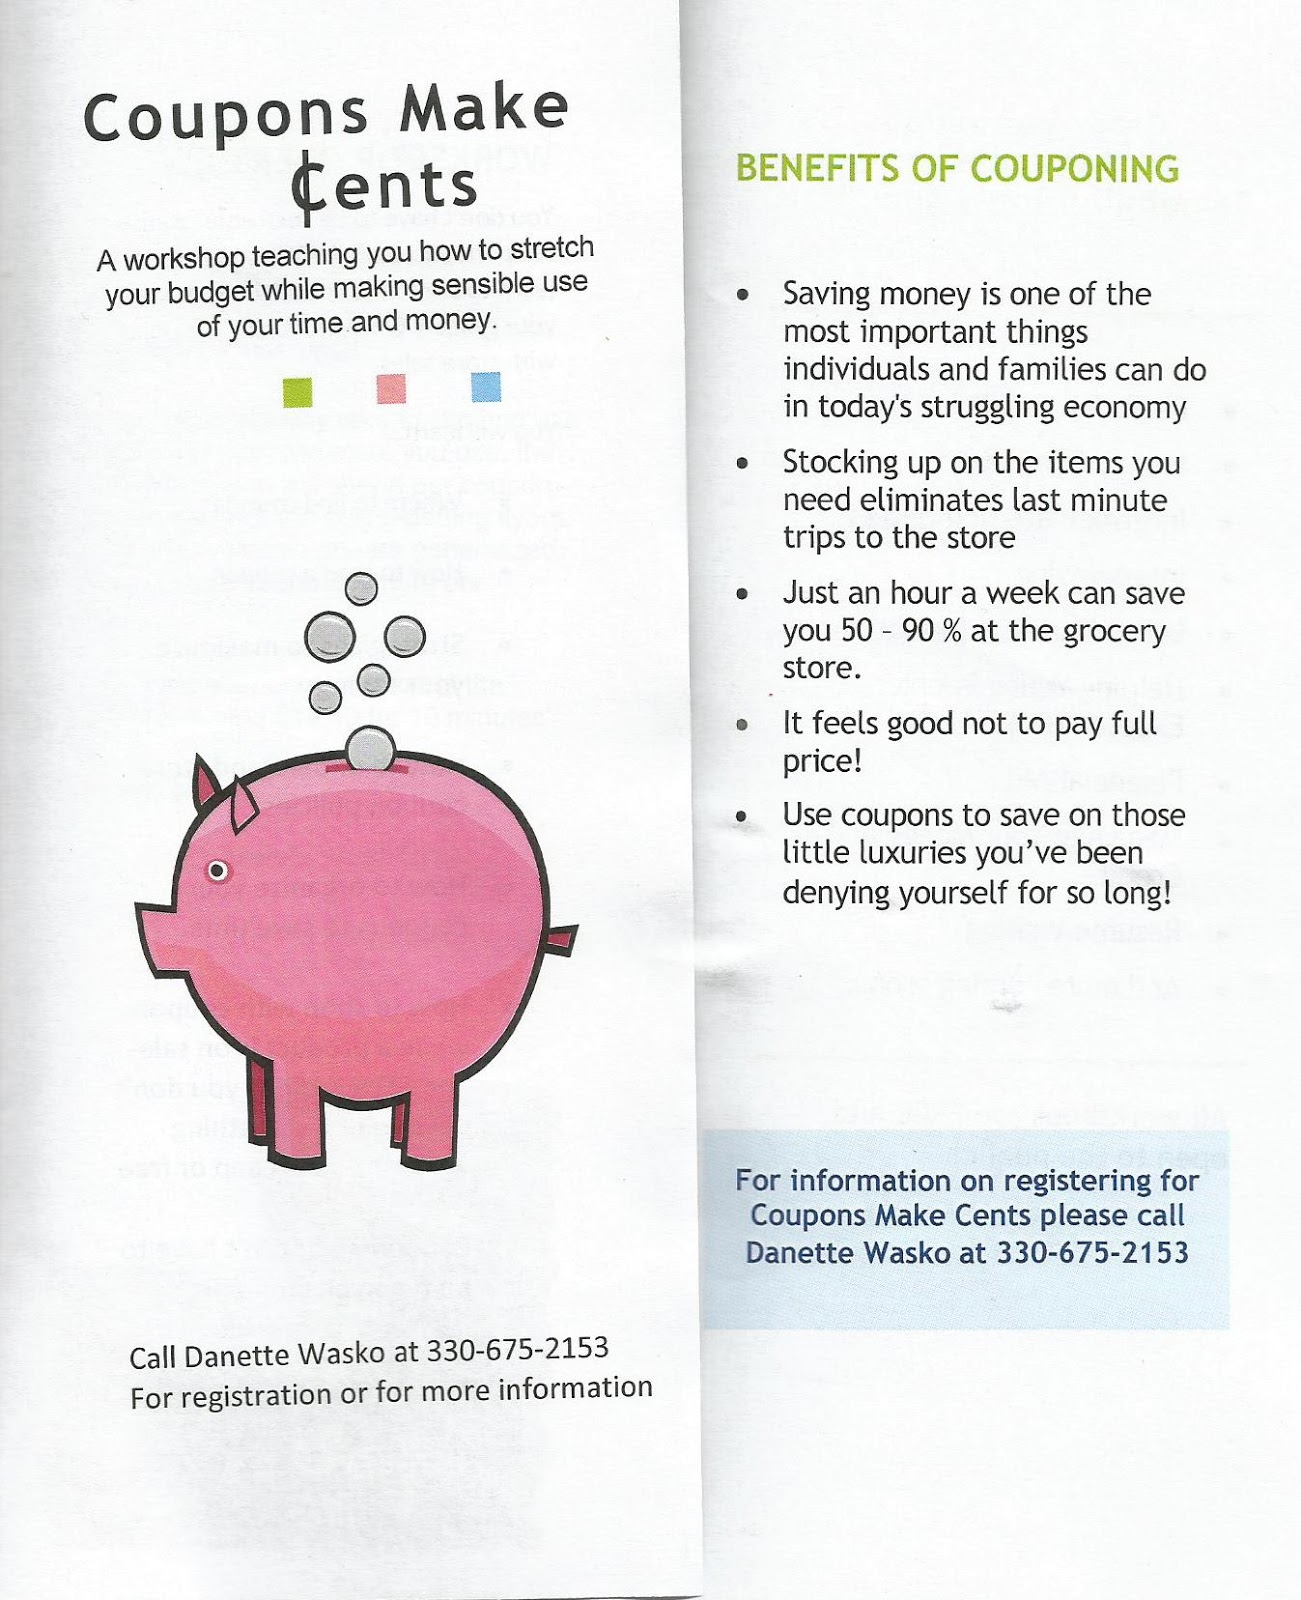 Family children first council trumbull county ohio coupons make cents class info - Code promo made com ...